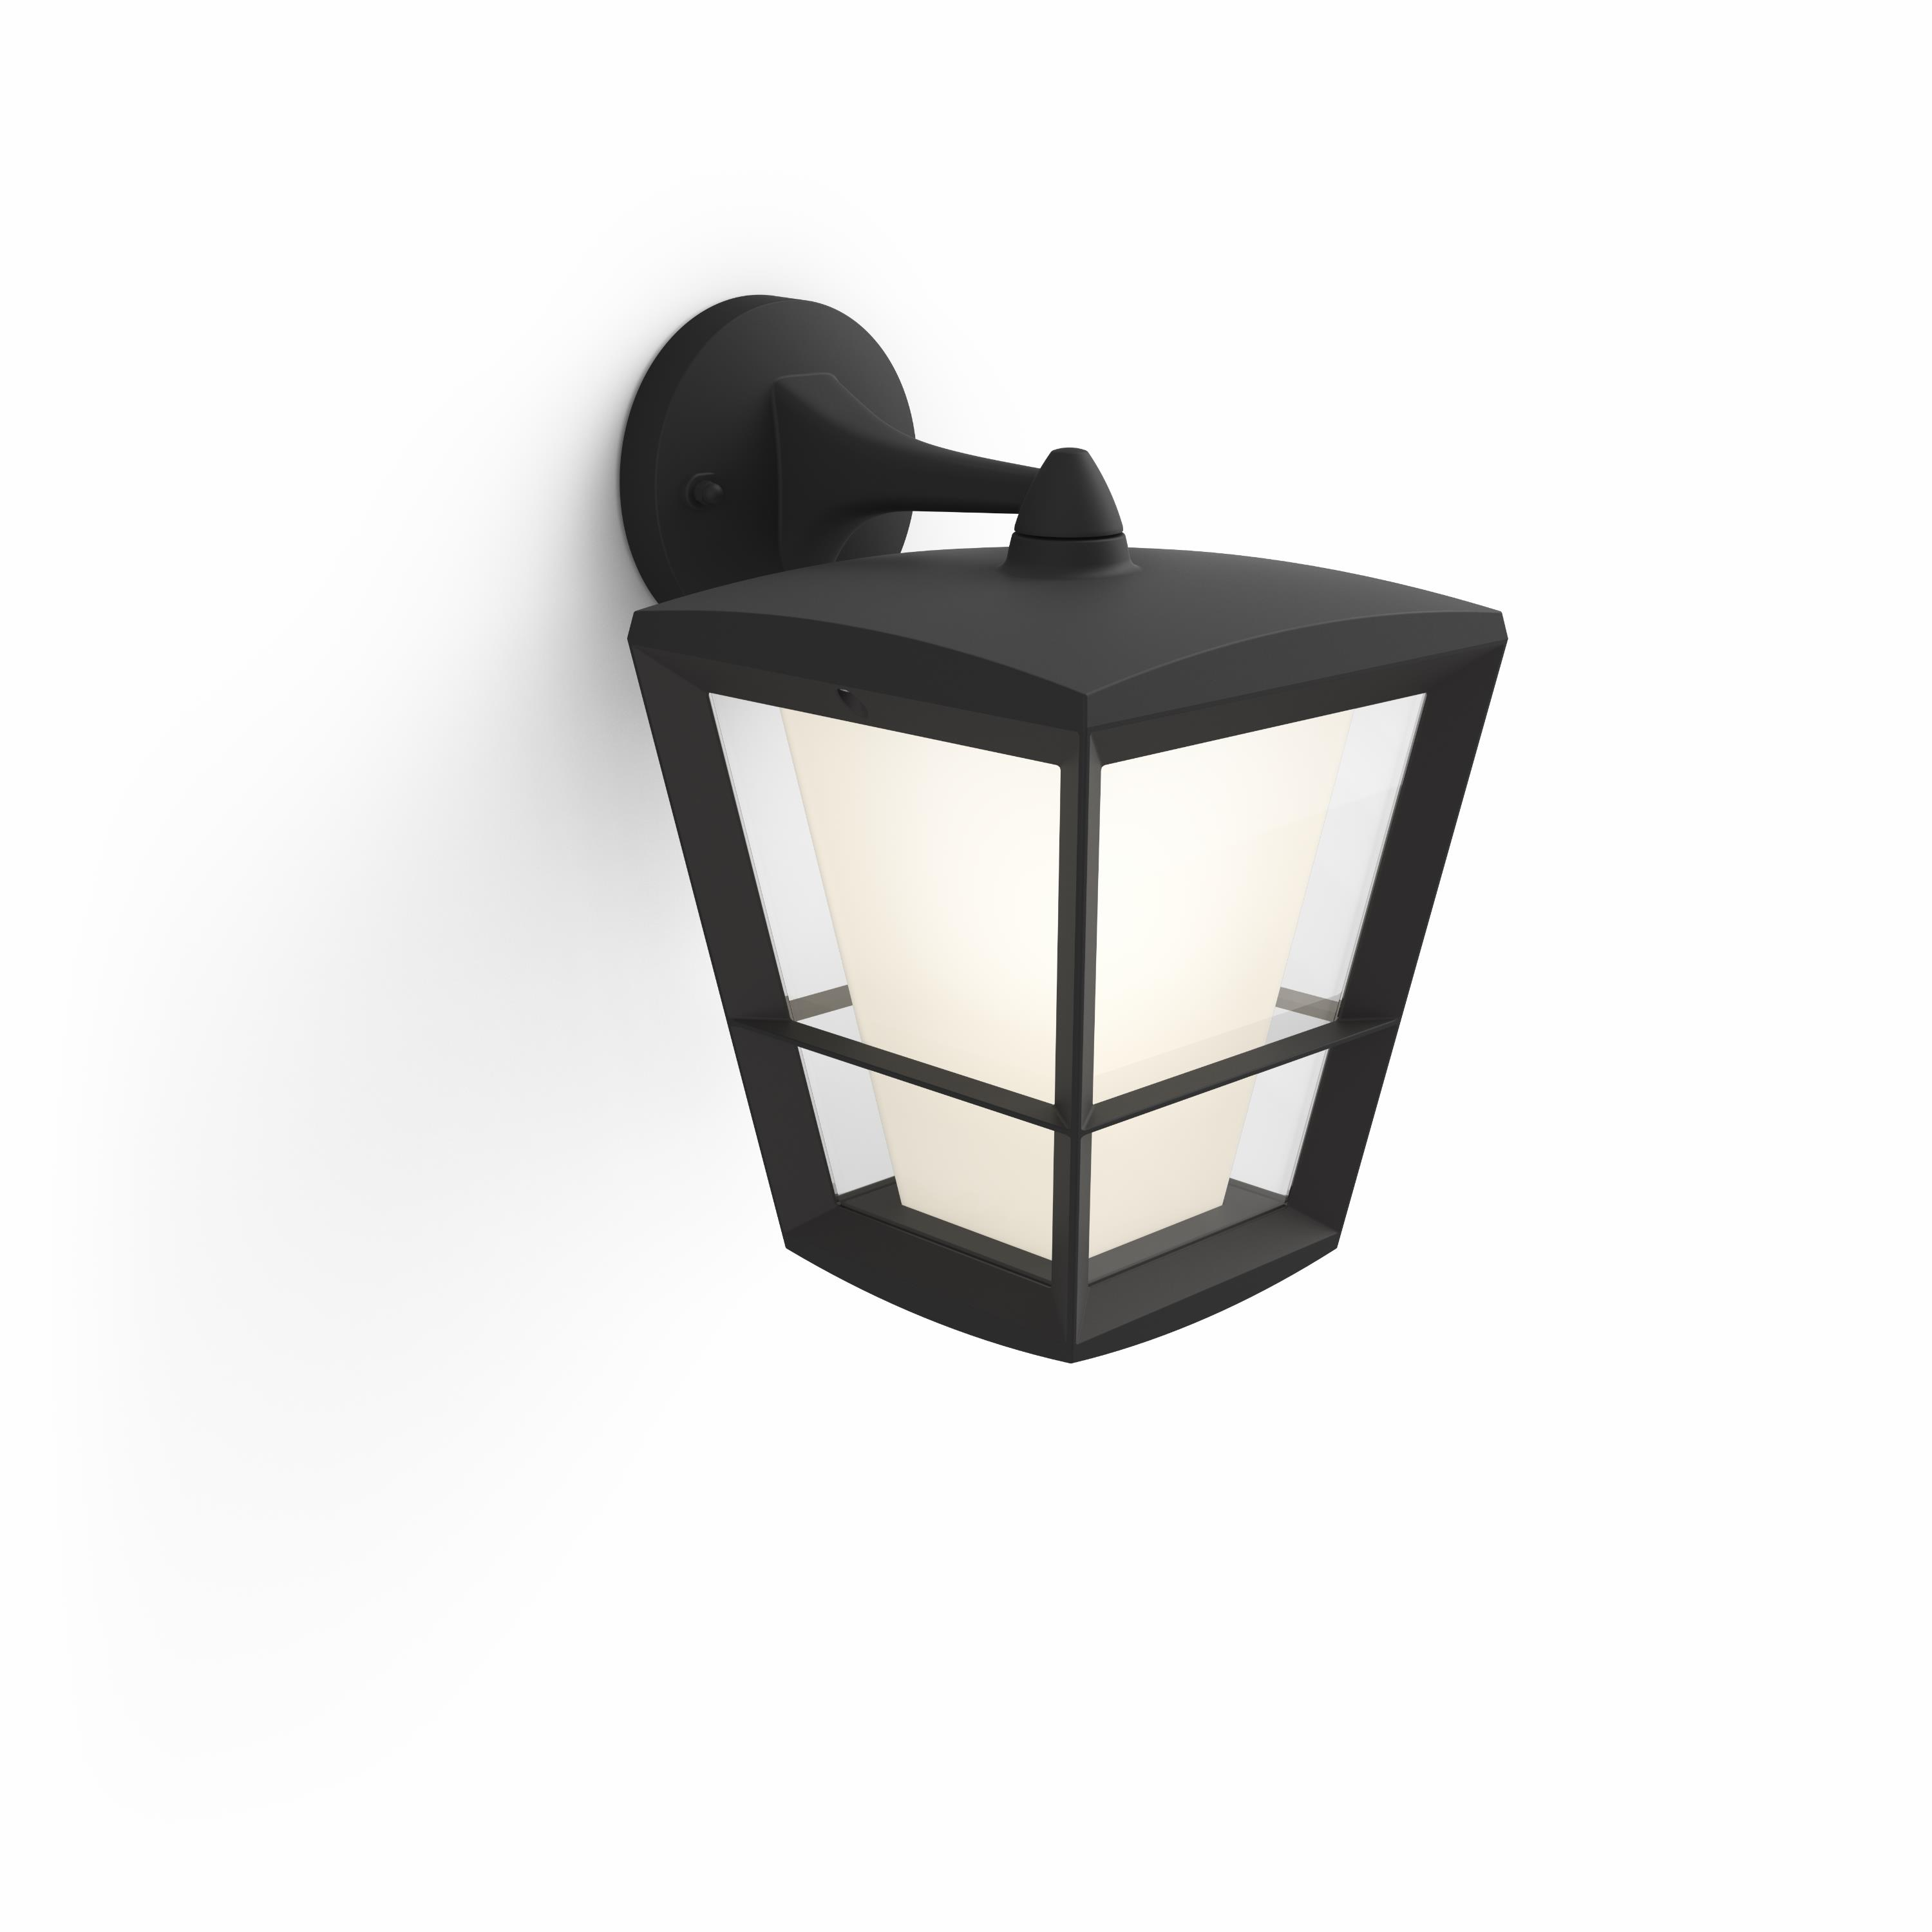 Philips Hue - Econic Down Outdoor Wandlaterne - Weiß & Farbe Ambiance